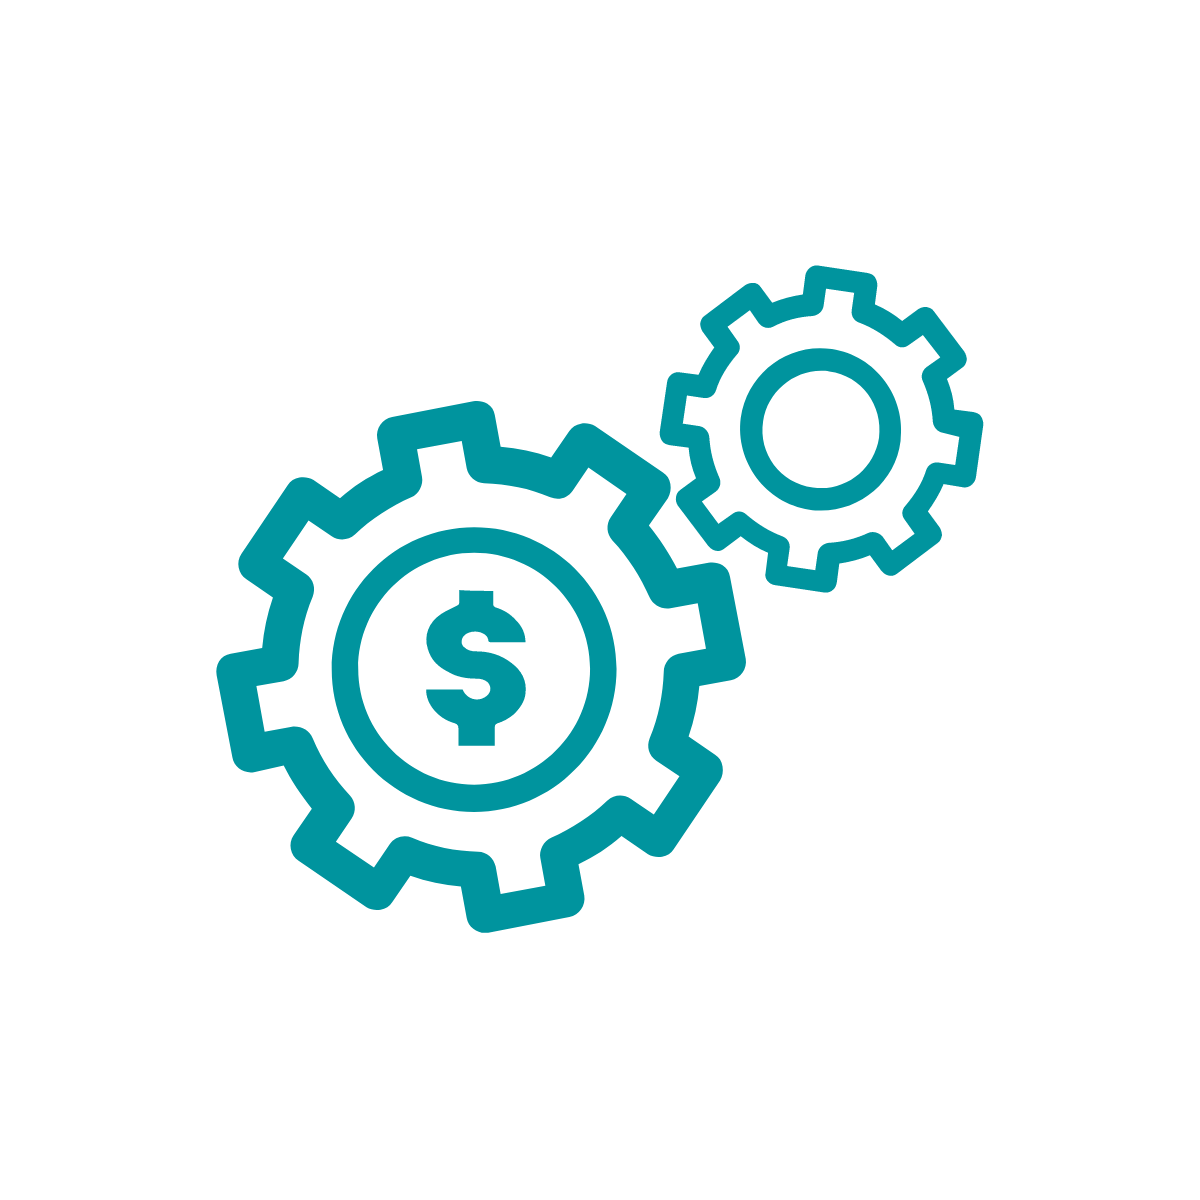 Icon of two gears turning, one with a dollar sign inside it